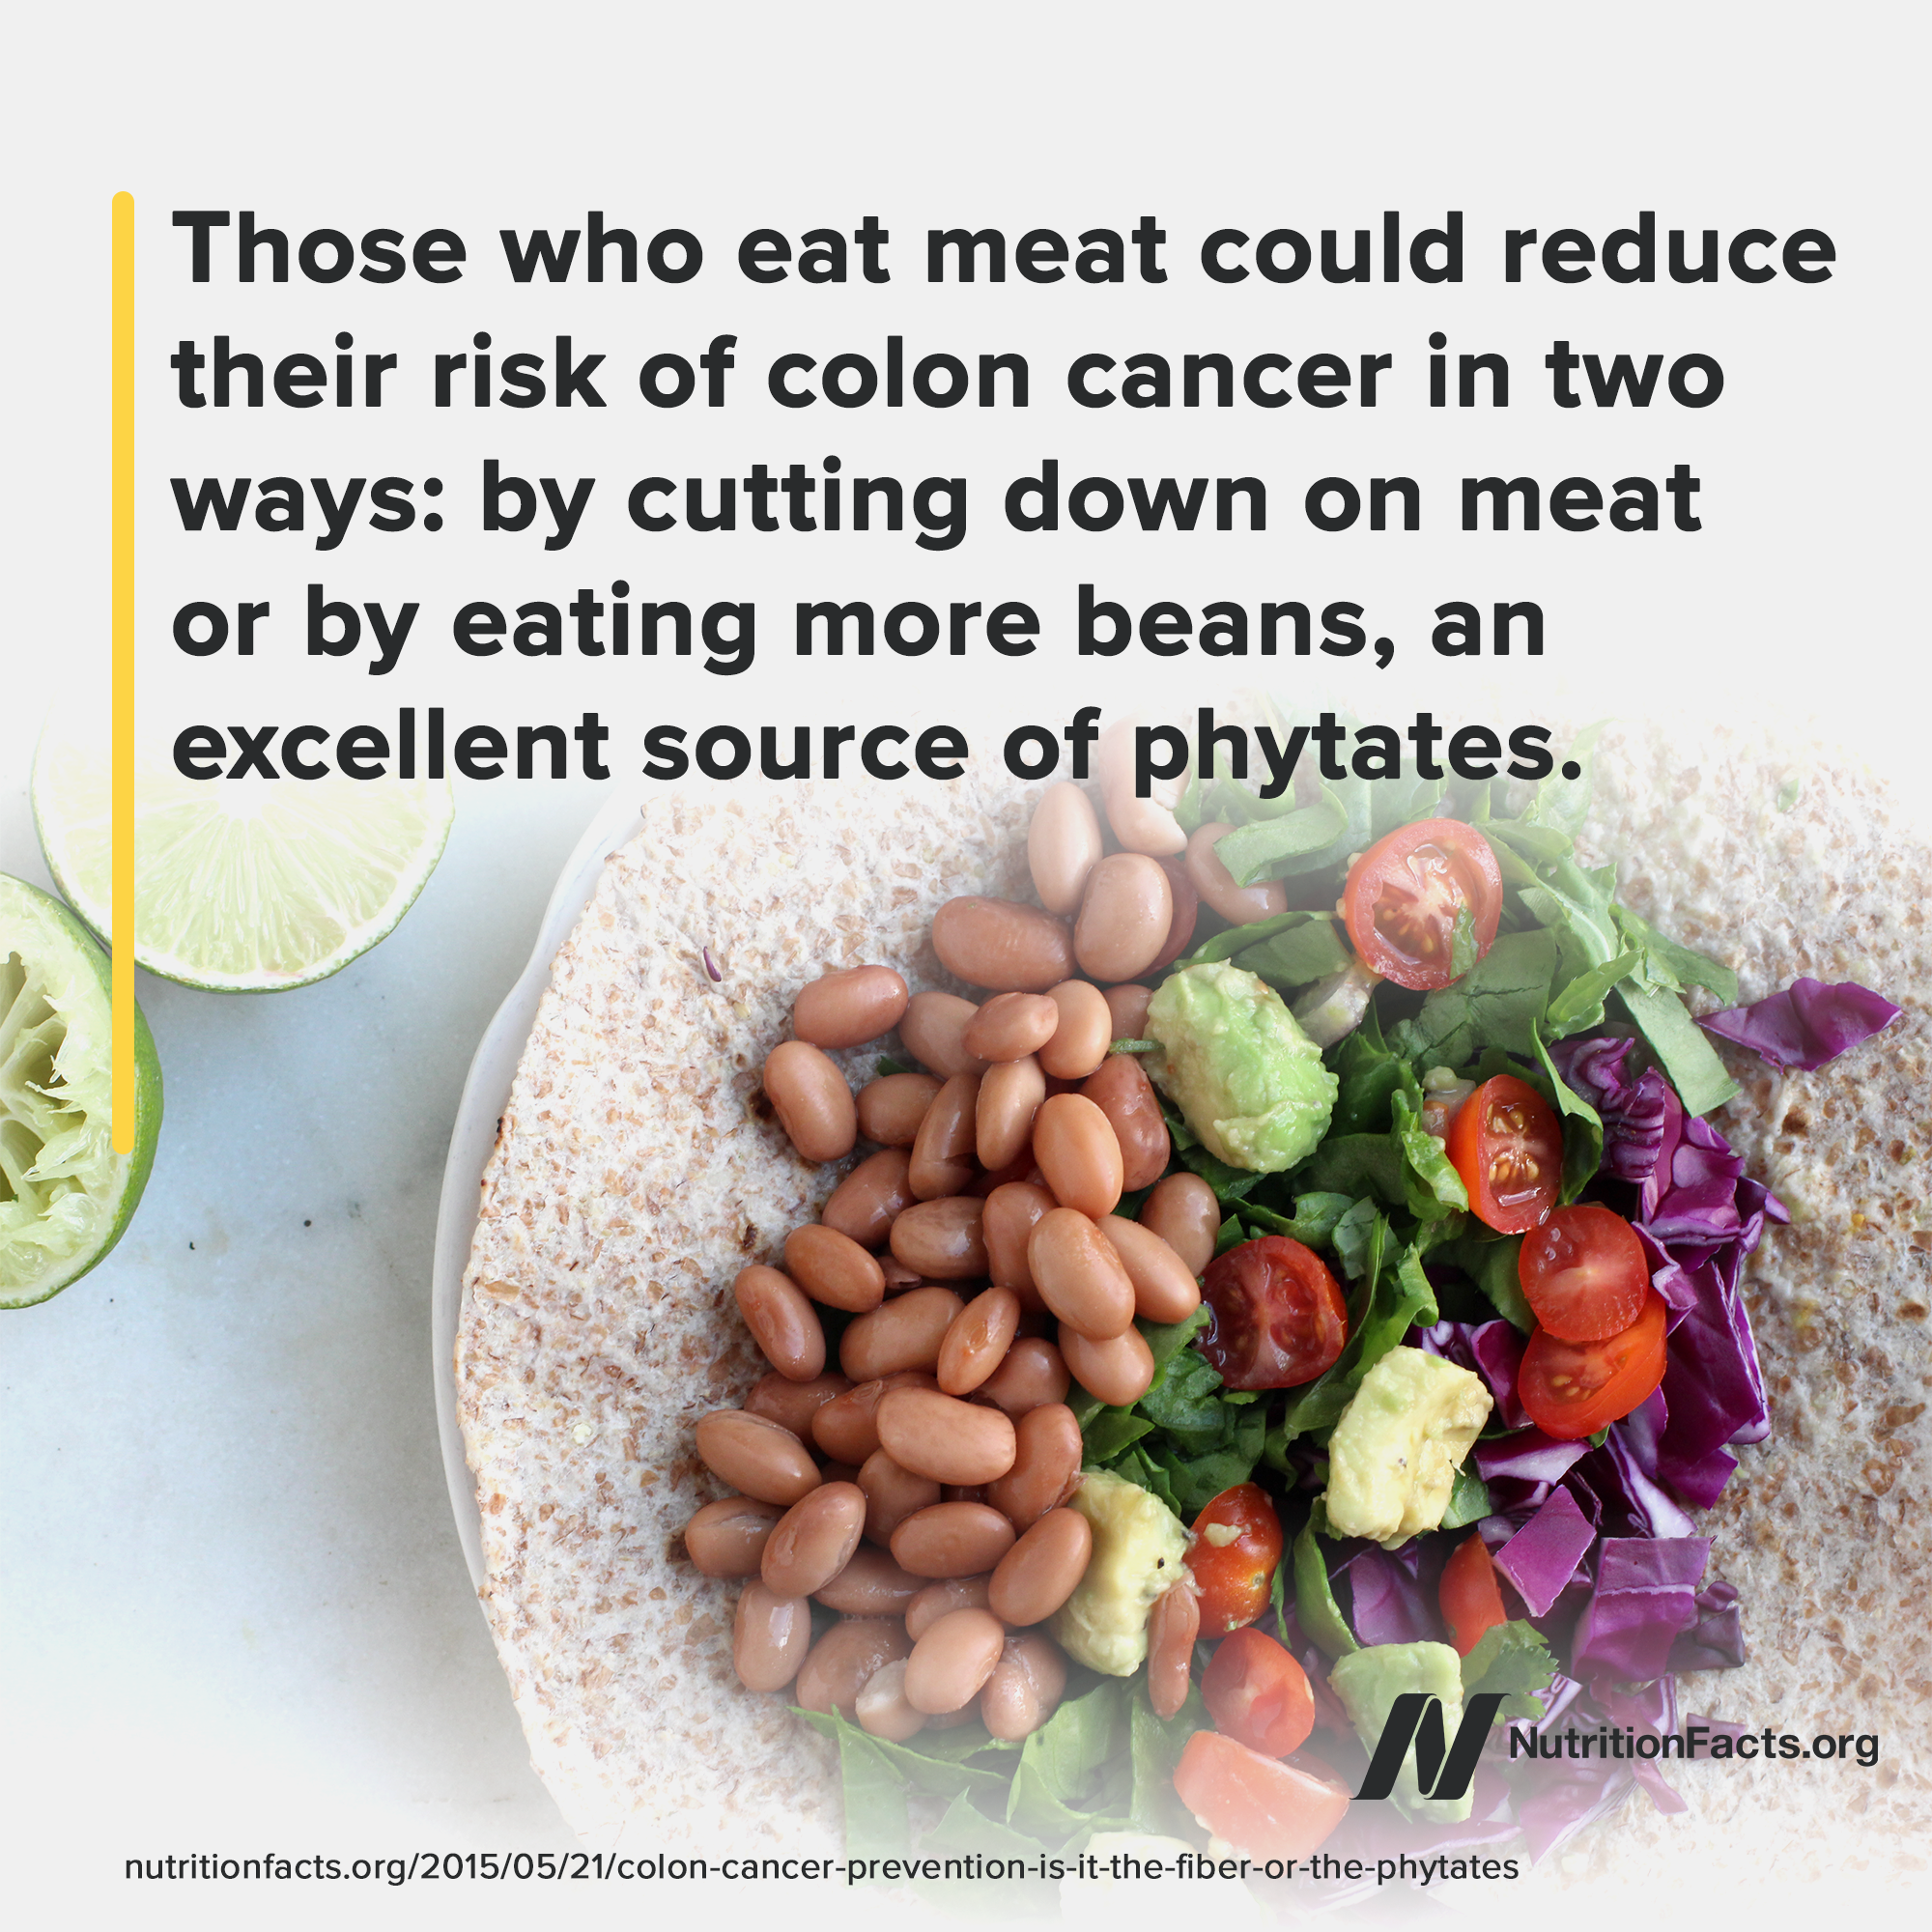 Colon Cancer Prevention: Is It The Fiber Or The Phytates